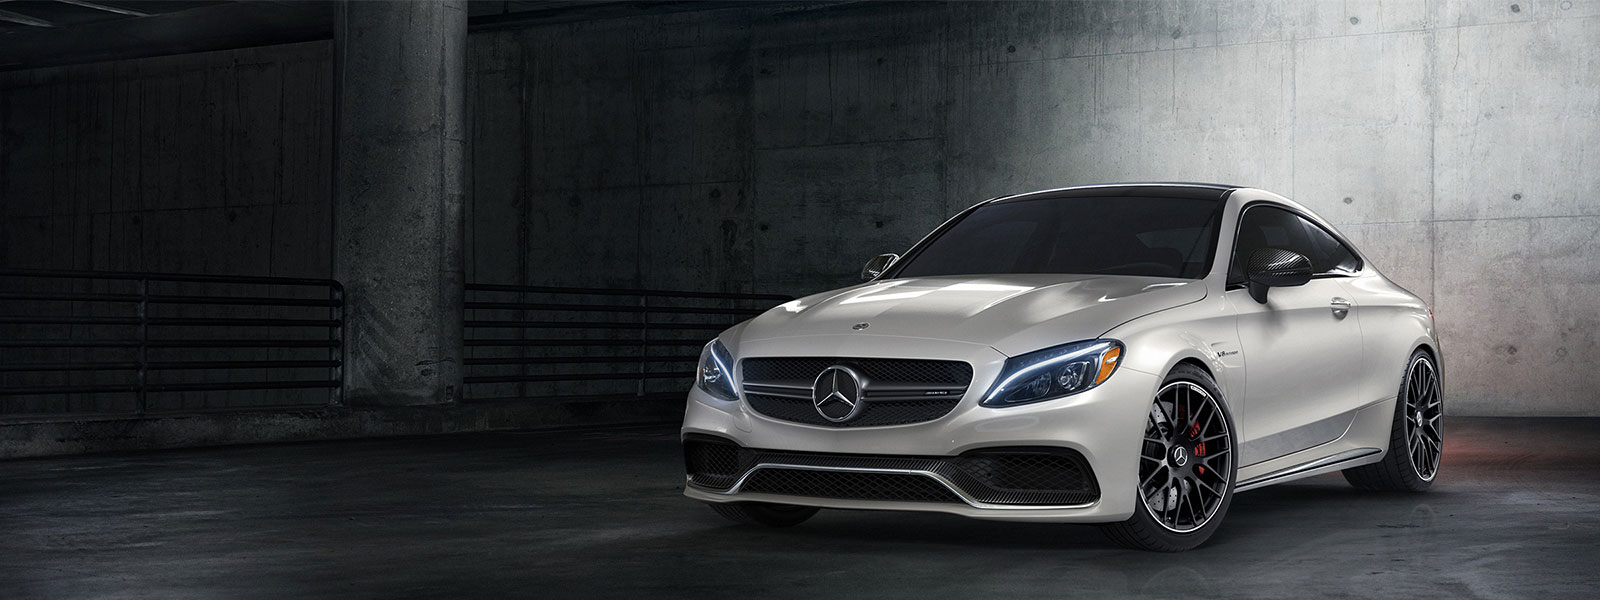 Mercedes Benz Amg >> Amg C Class Performance Coupe Mercedes Benz